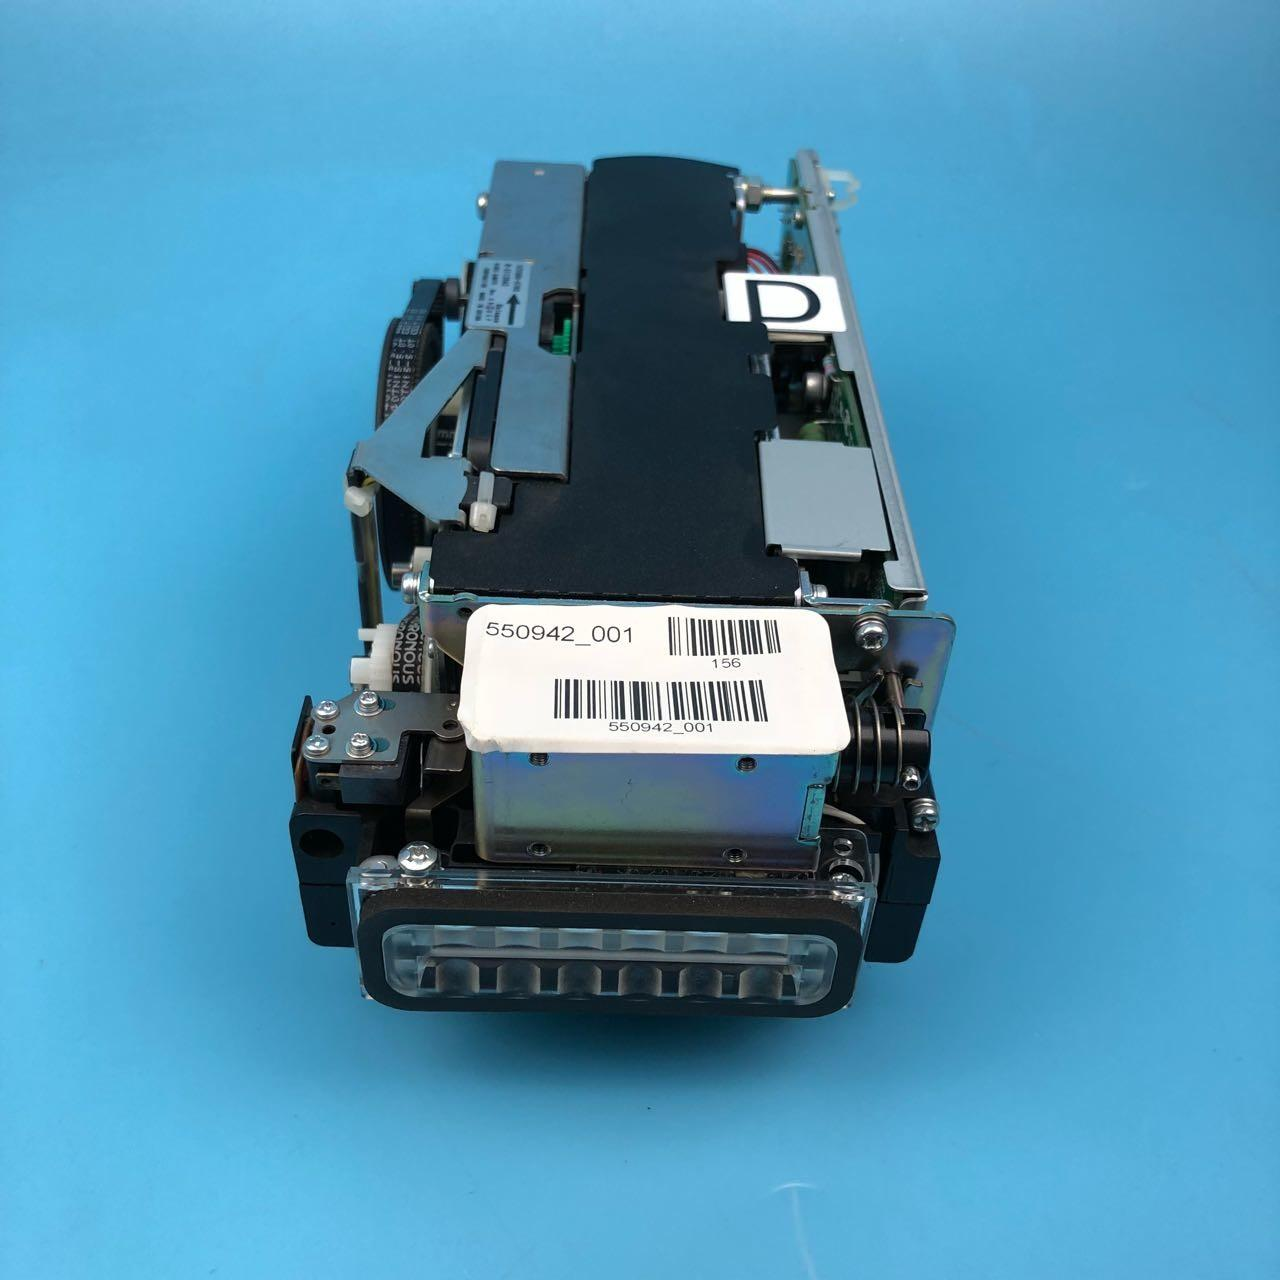 Buy cheap Original New ATM Machine Parts ATM Card Reader 00-104380-000k For Diebold Opteva 00104380000k from Wholesalers